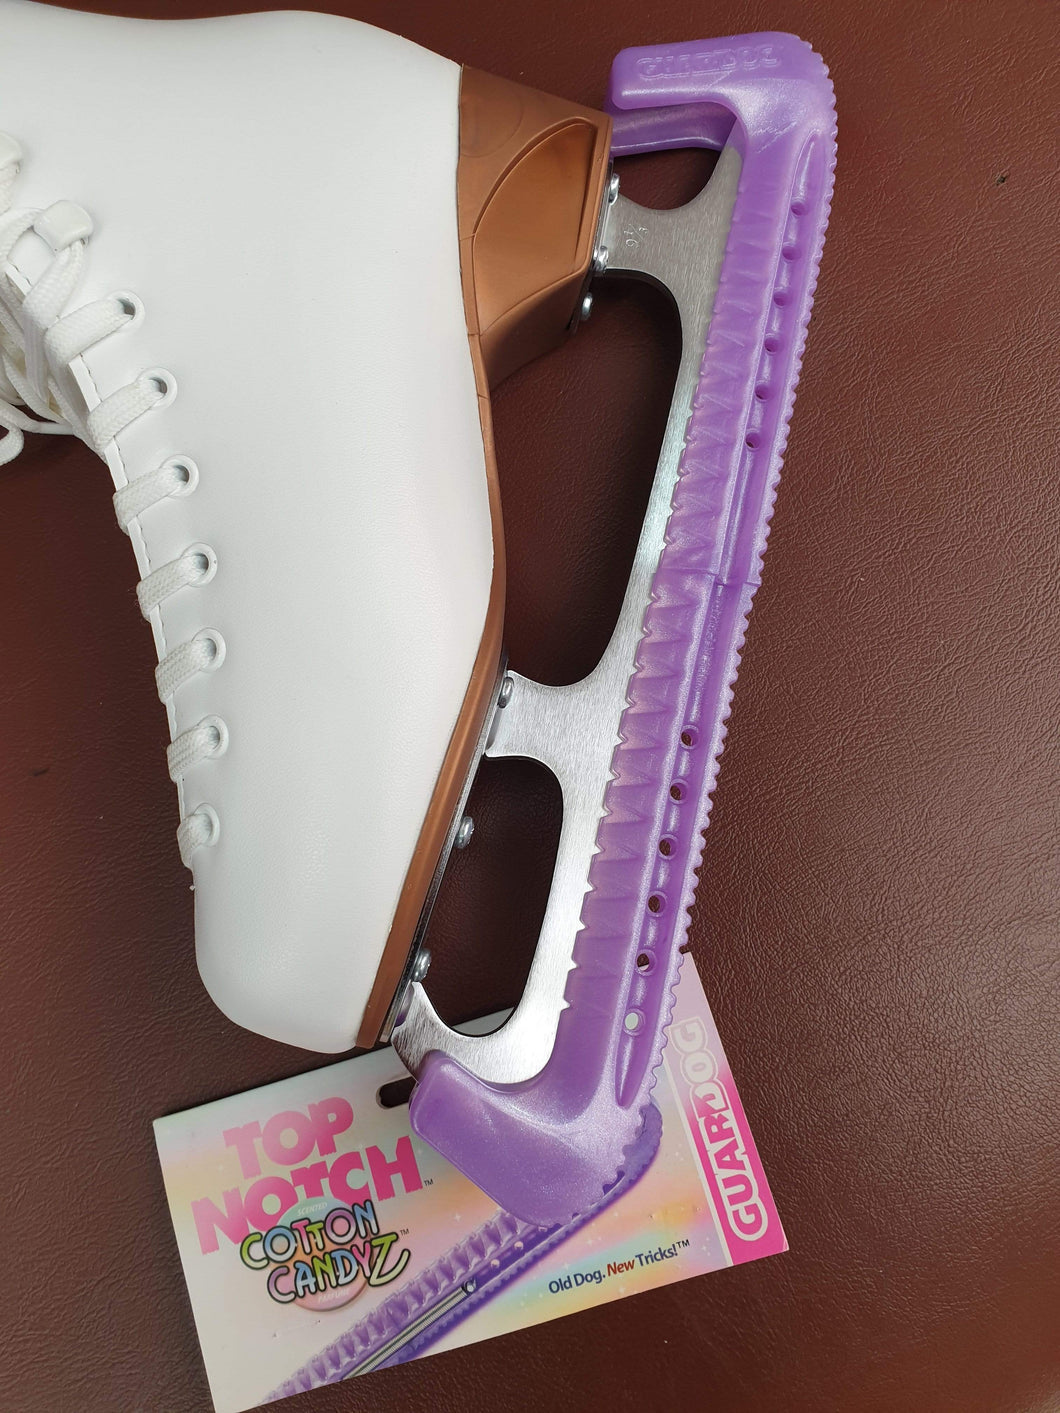 Top Notch Cotton Candy Hard Blade Guards - Scented - Bladeworx